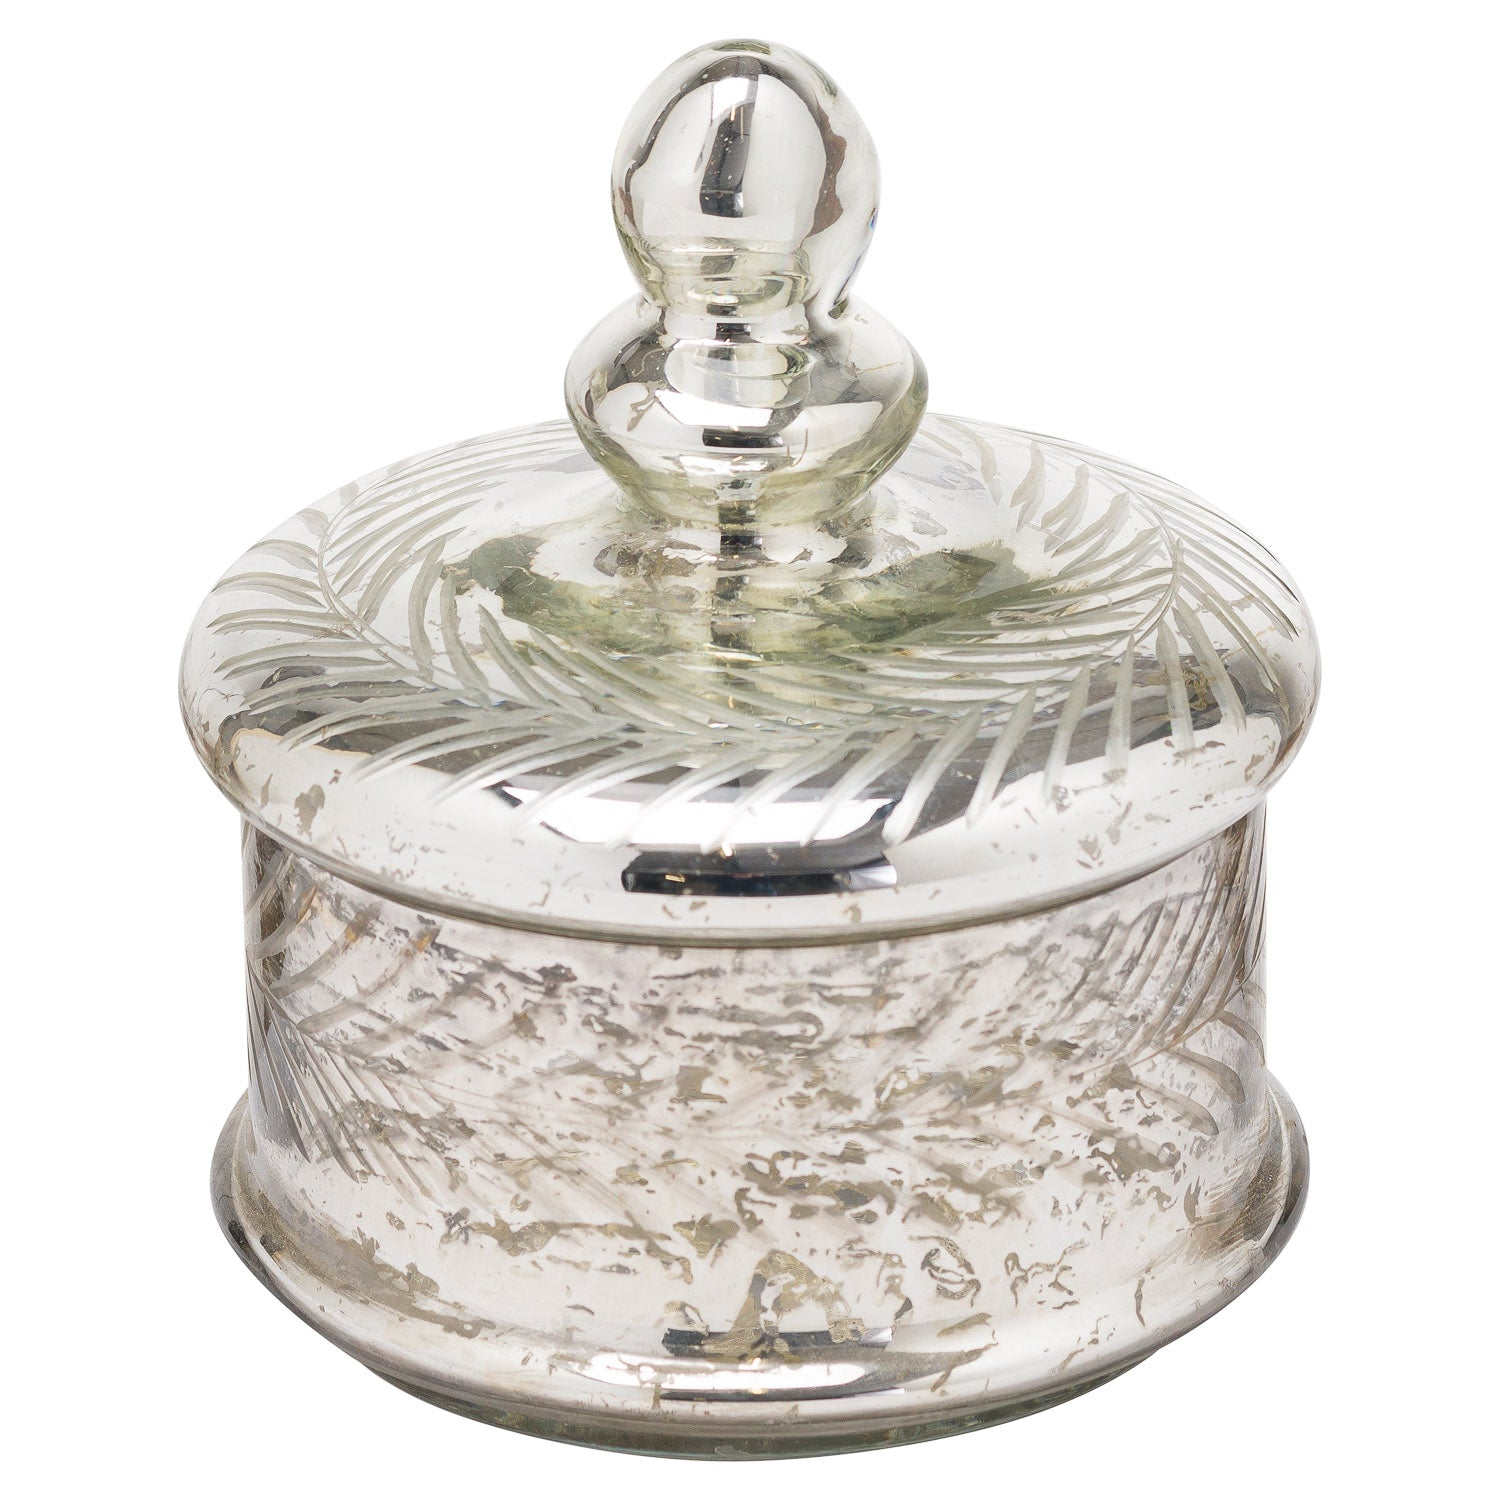 The Noel Collection Mercury Small Decorative Trinket Jar